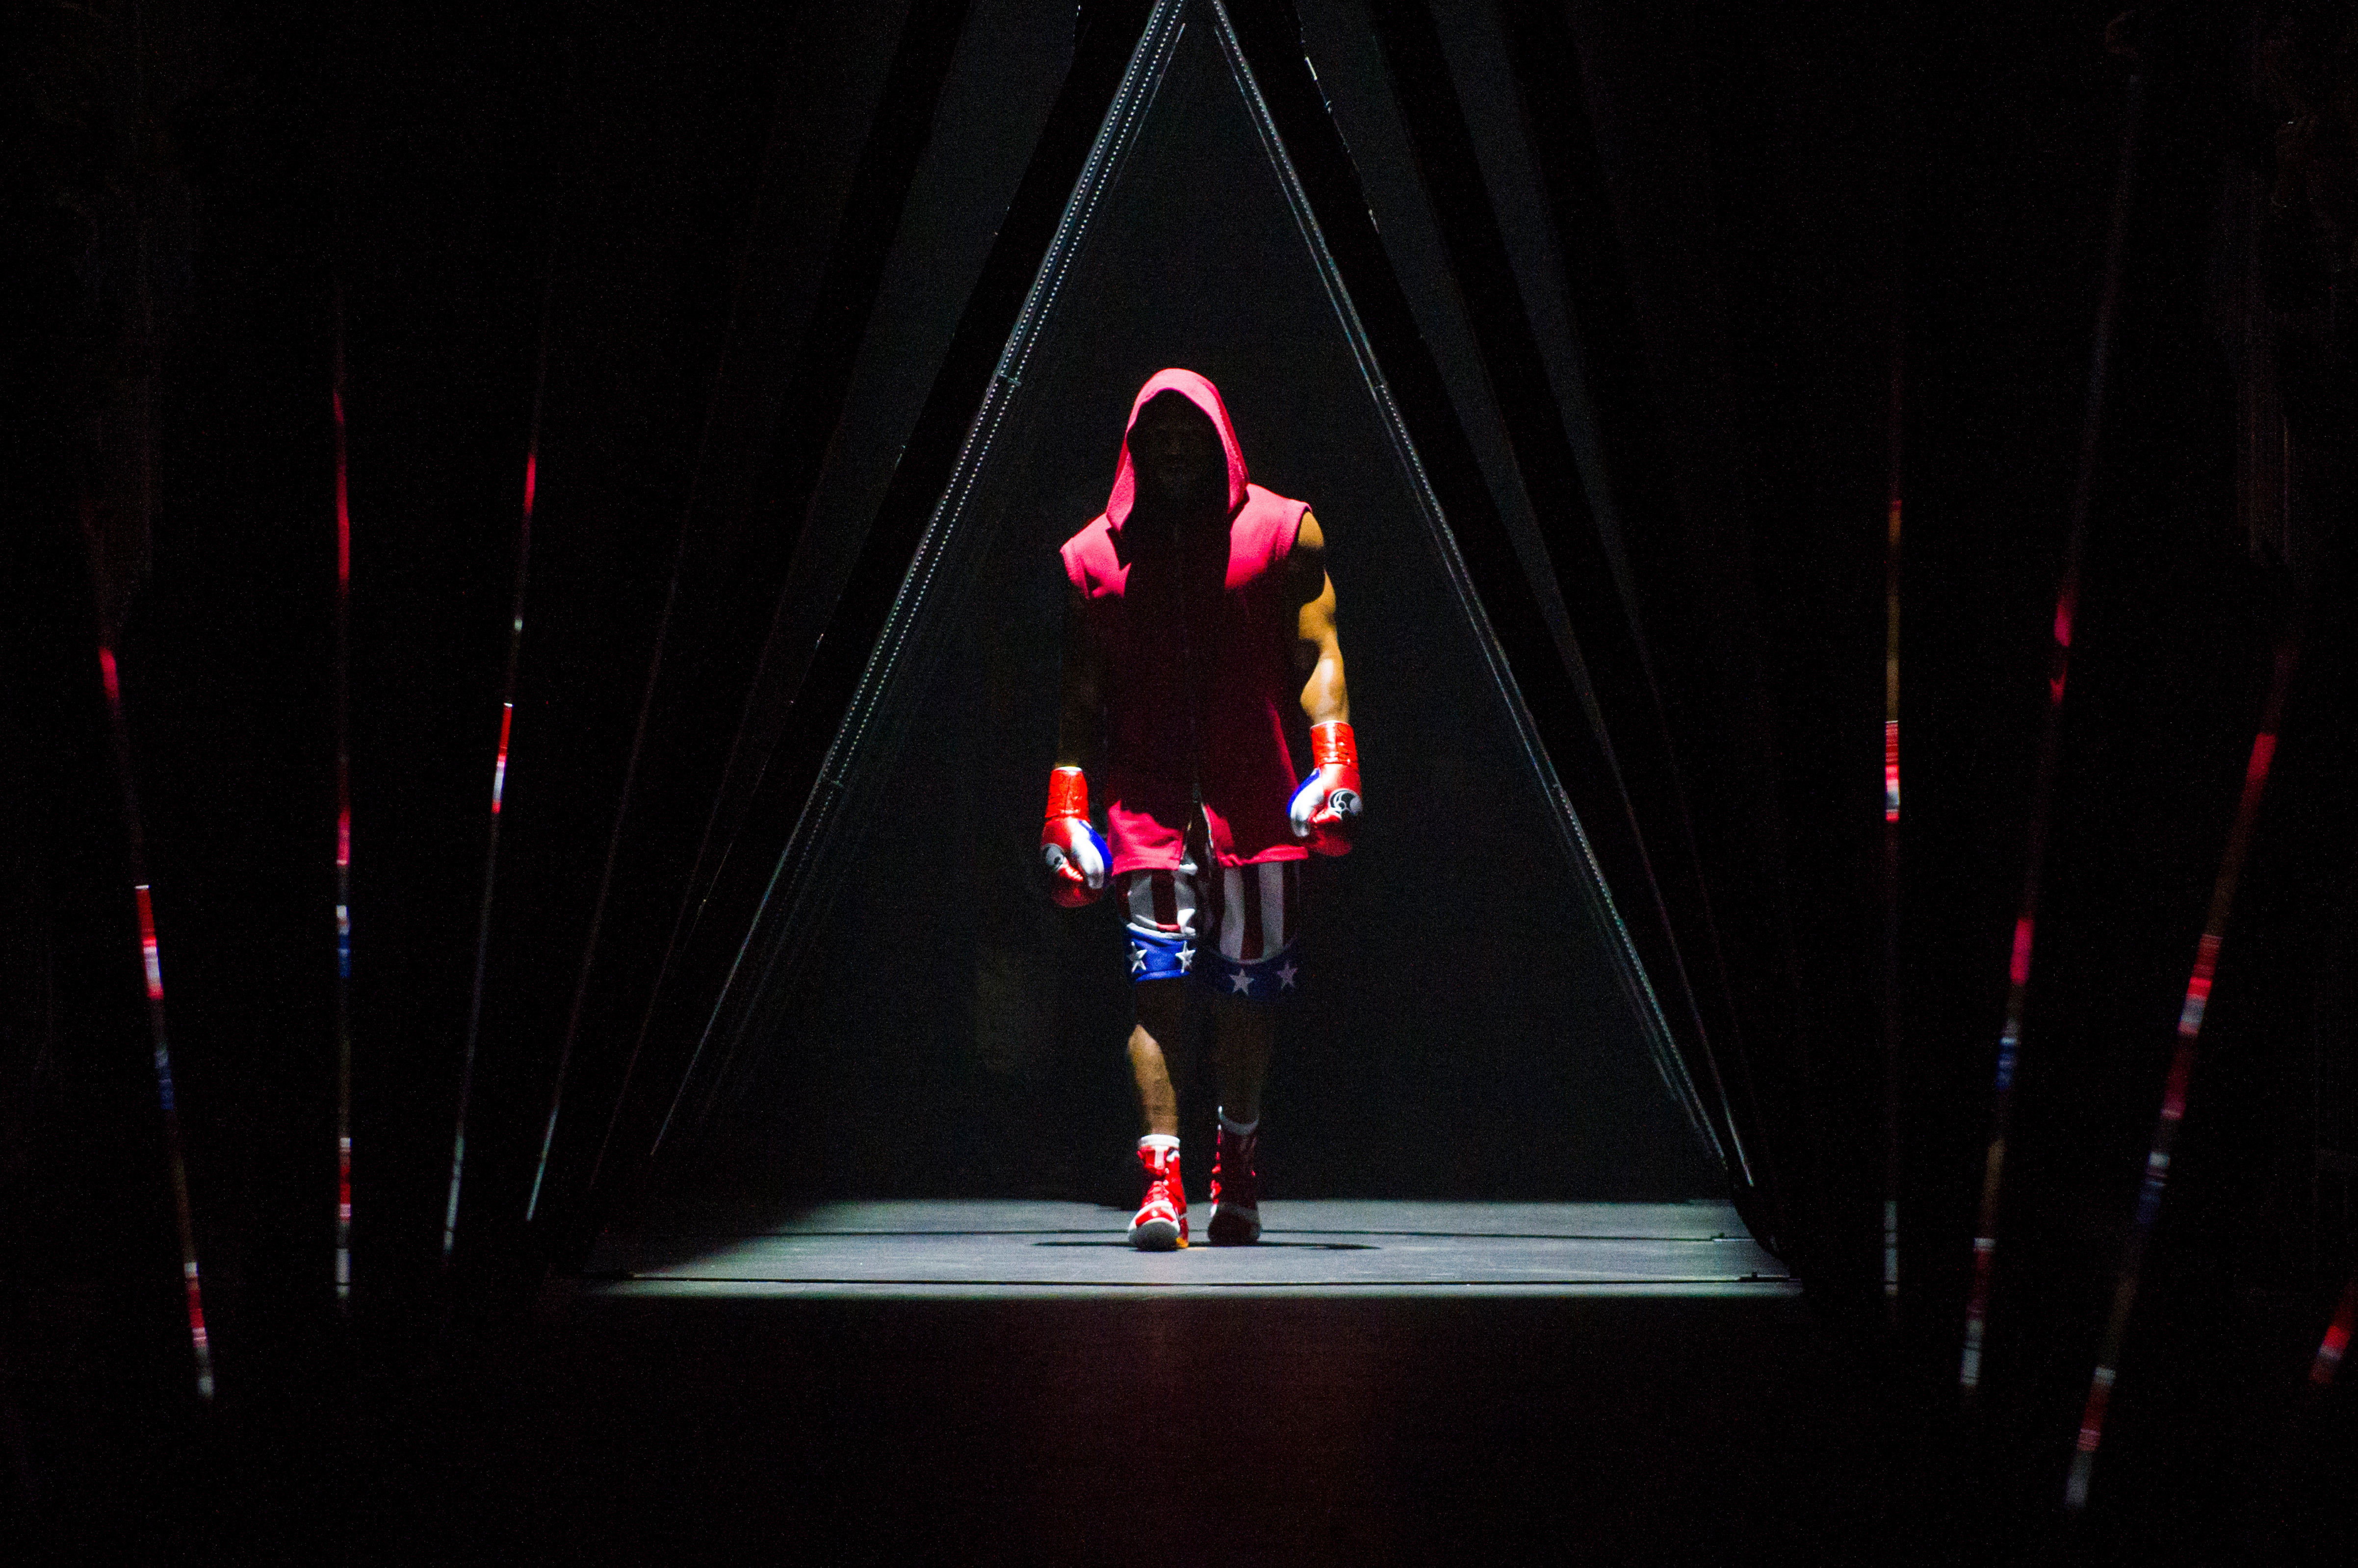 Michael B Jordan As Adonis Creed In Creed Ii Wallpaper Hd Movies 4k Wallpapers Images Photos And Background